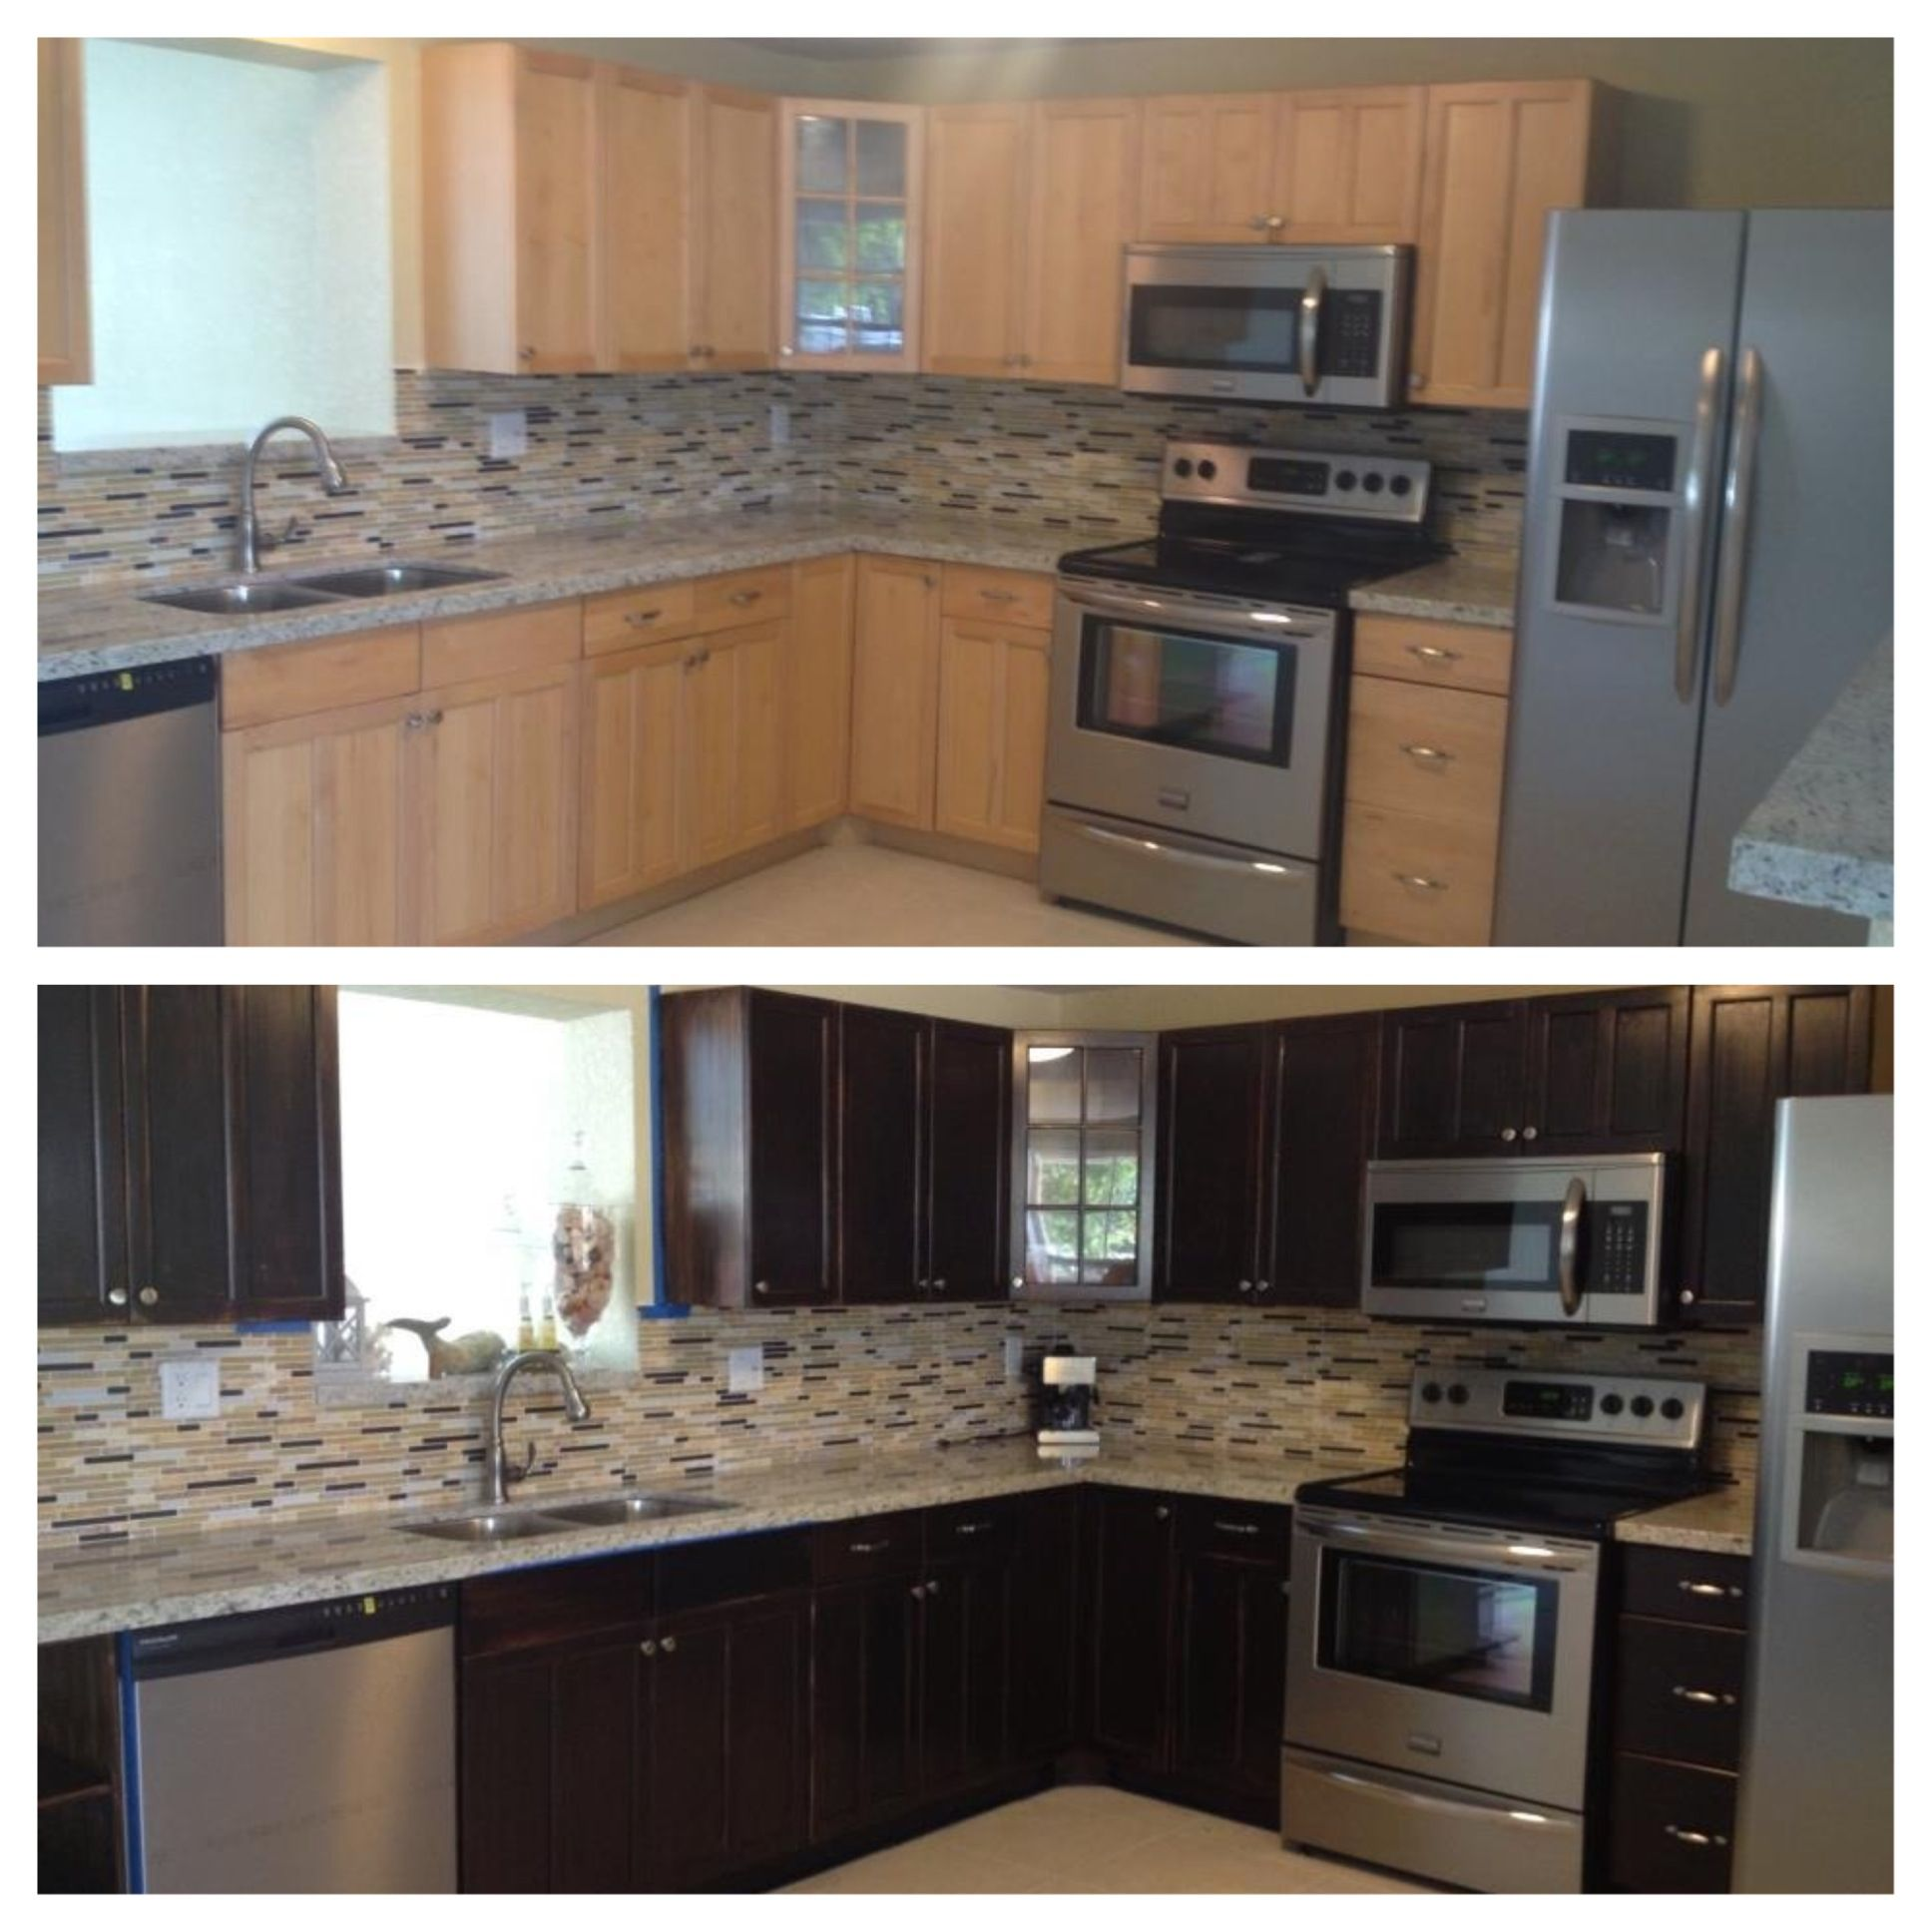 Diy Kitchen Cabinets Before And After my kitchen before / after using wood stain. | diy | pinterest